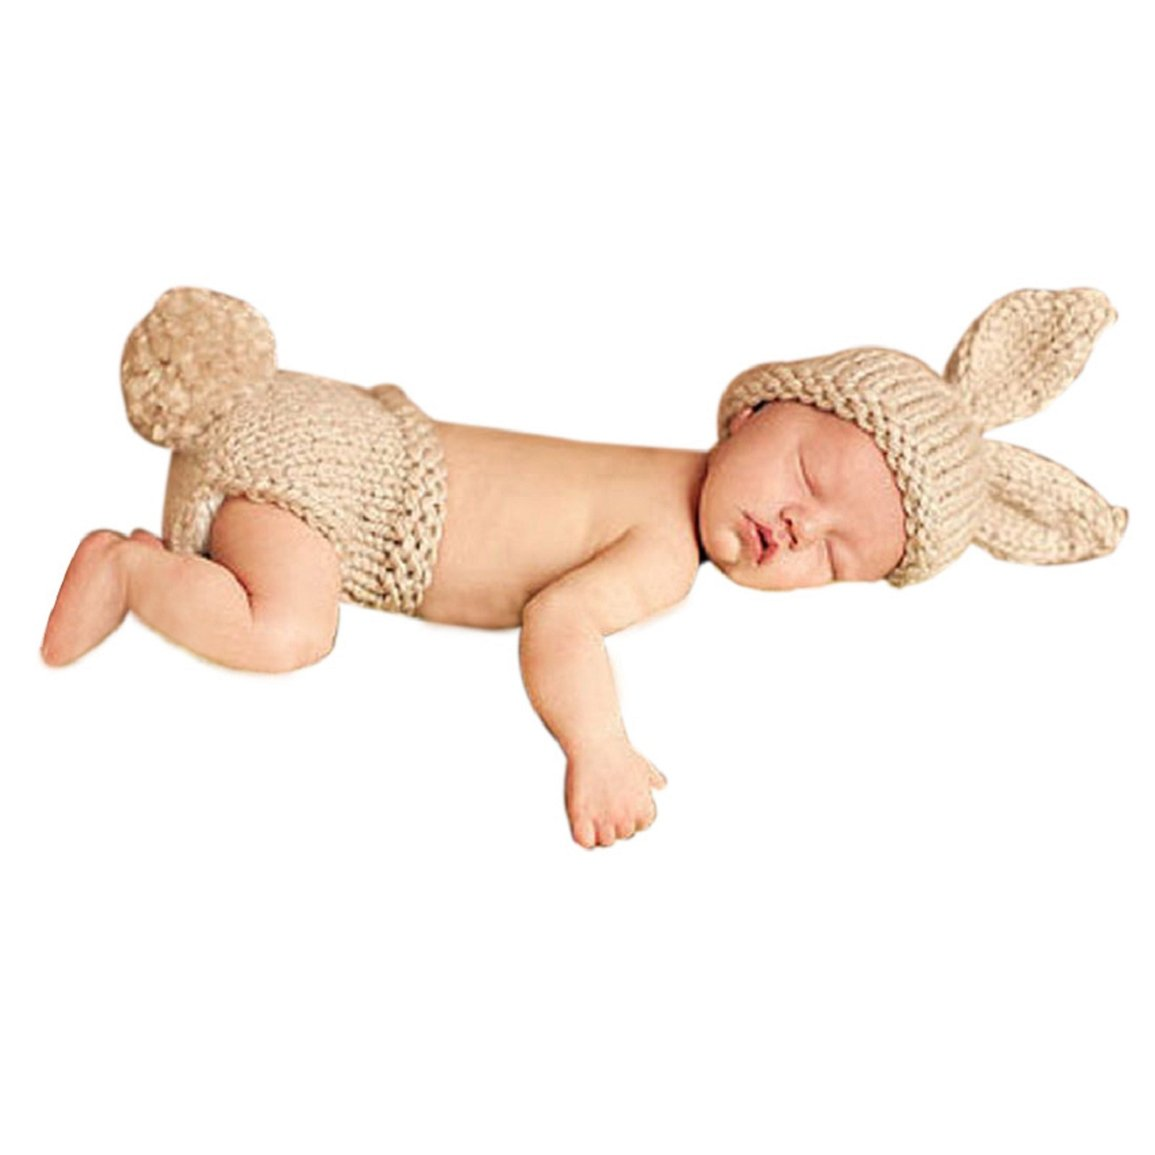 Changeshopping Newborn Baby Outfit Infant Crochet Knitted Cap Costume Photography Prop (D) Changeshopping 545